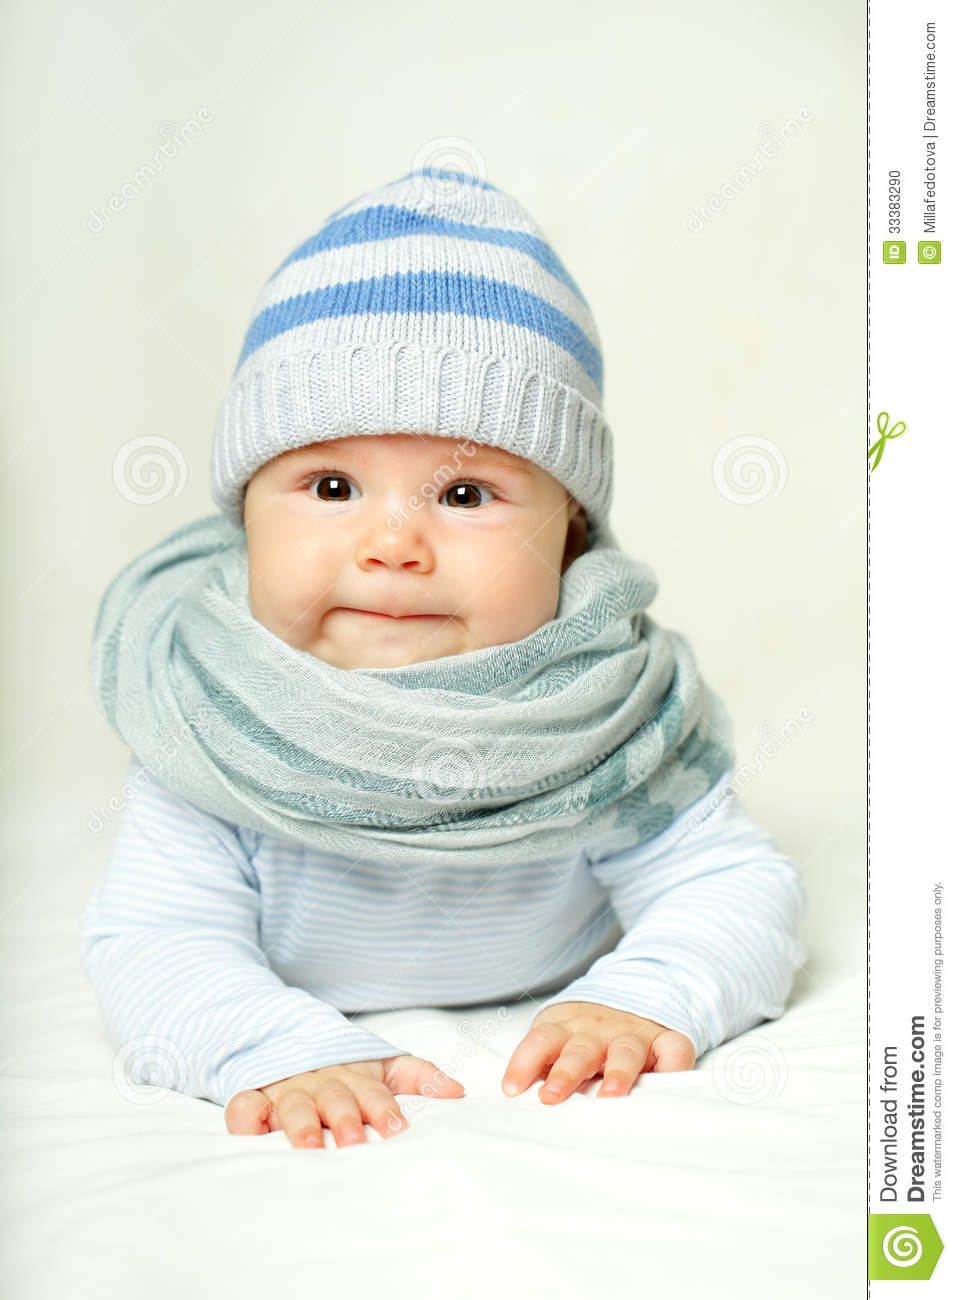 happy child, cute small baby stock photo - image of smiling, hand